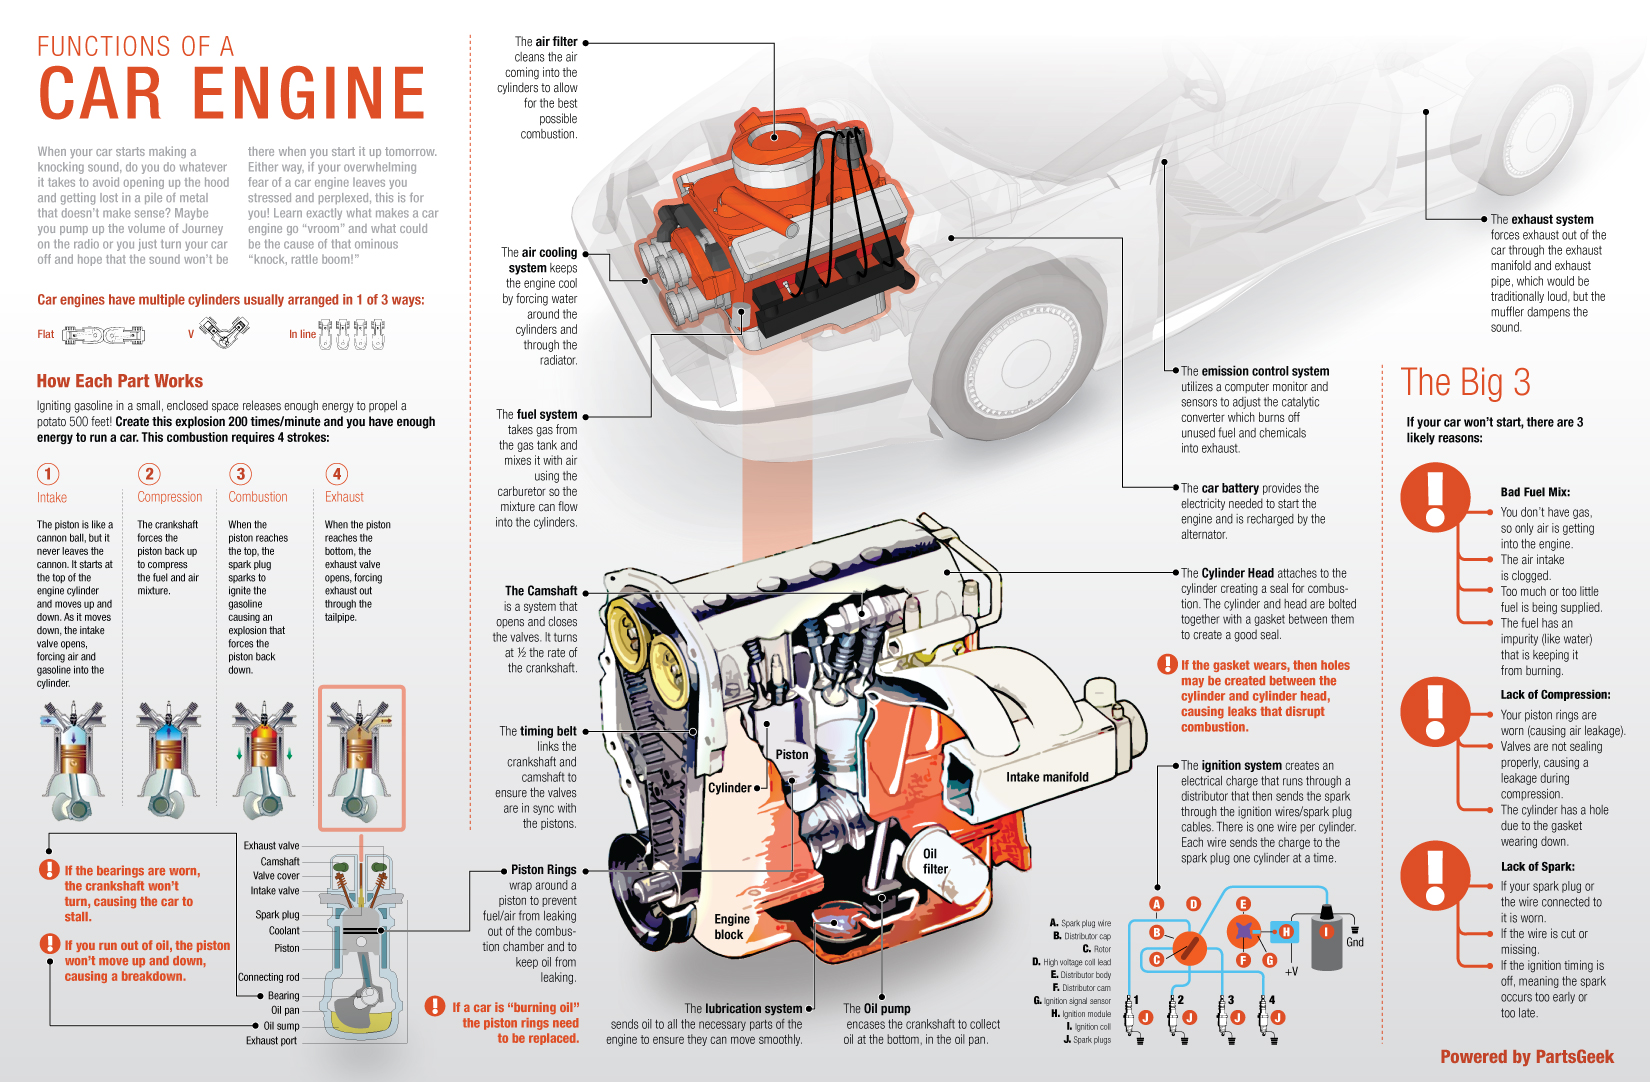 How car engines work - CARSPART